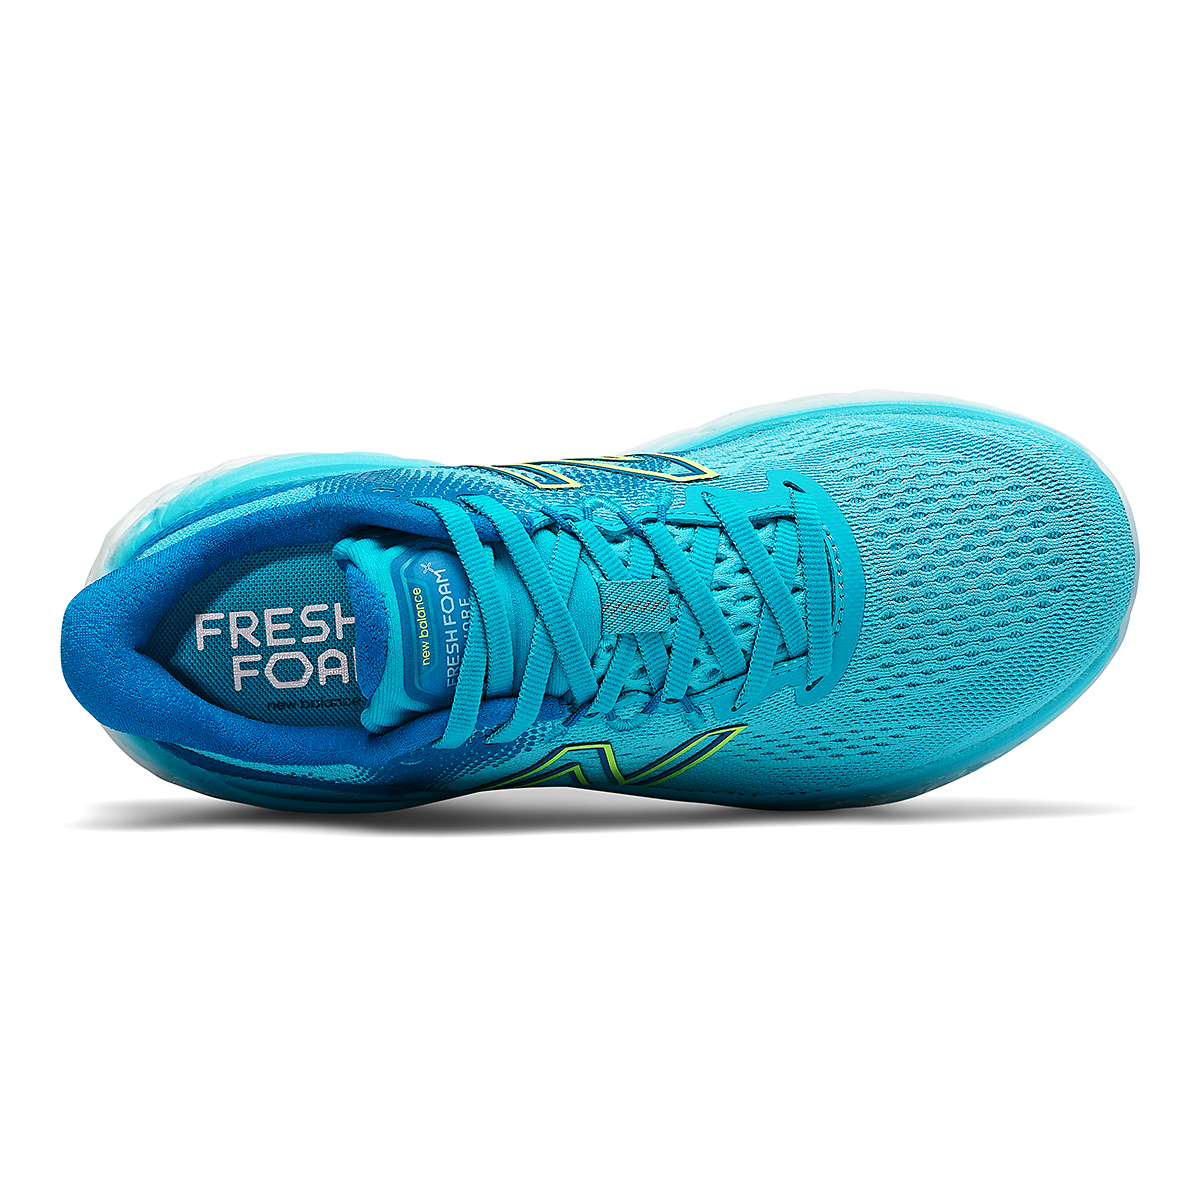 Women's New Balance Fresh Foam More V3 Running Shoe - Color: Virtual Sky/Bleached Lime Glo - Size: 5 - Width: Extra Wide, Virtual Sky/Bleached Lime Glo, large, image 3